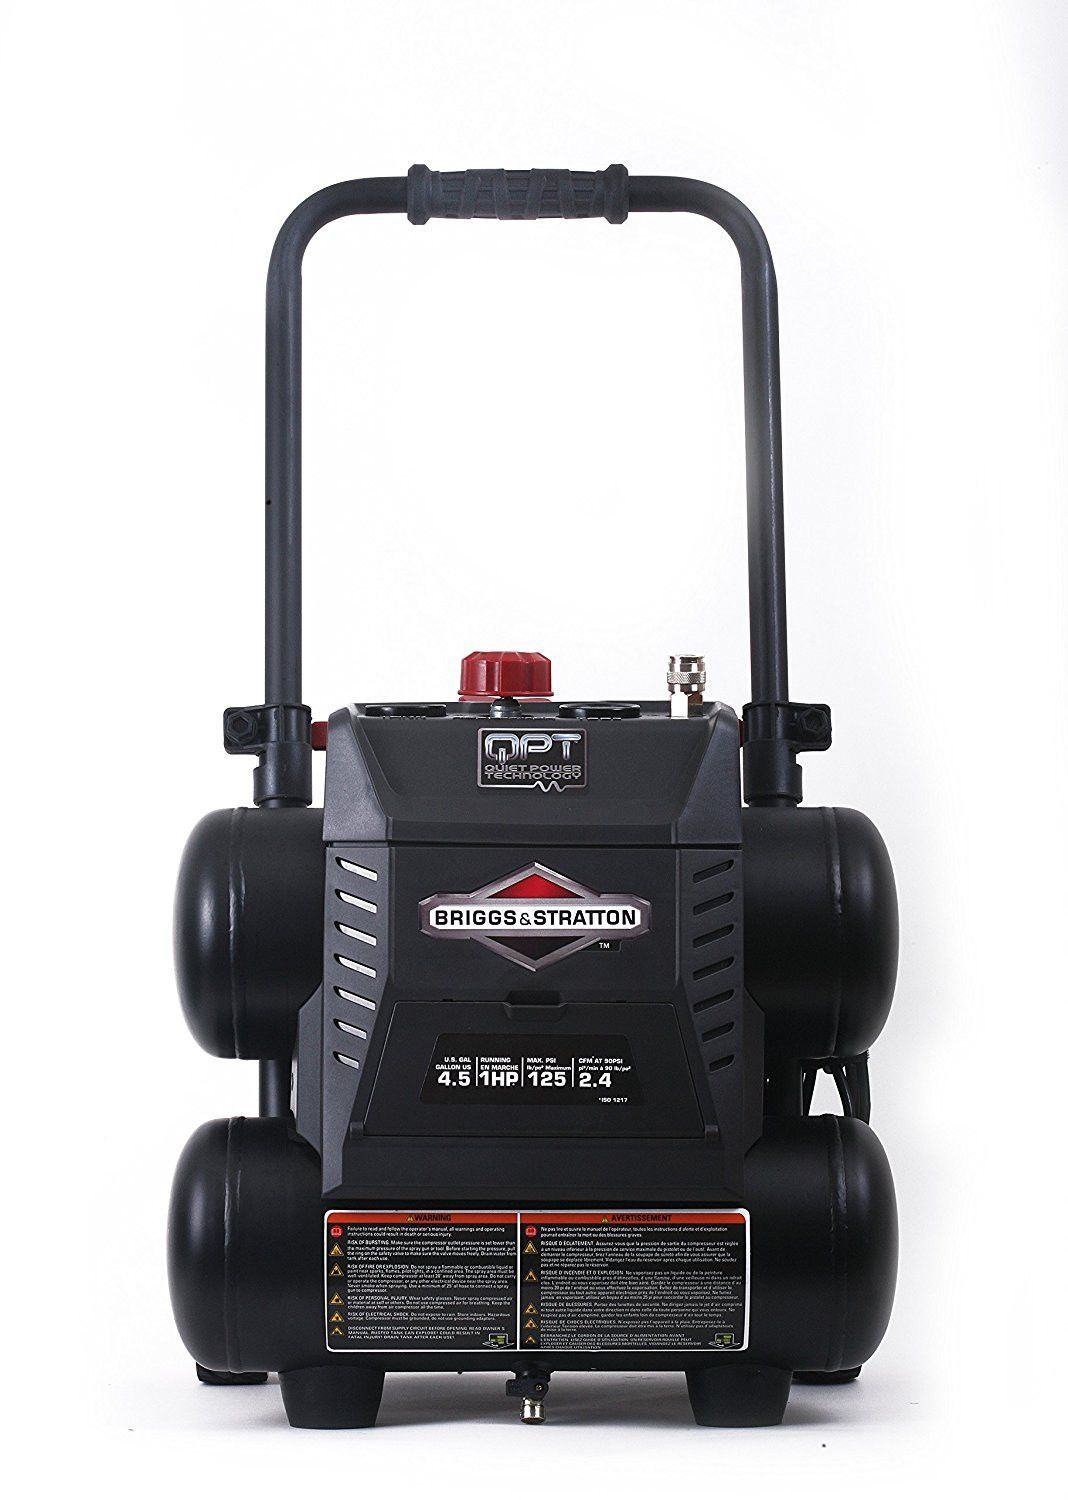 Briggs Stratton 4.5 Gallon Quiet Power Technology Air